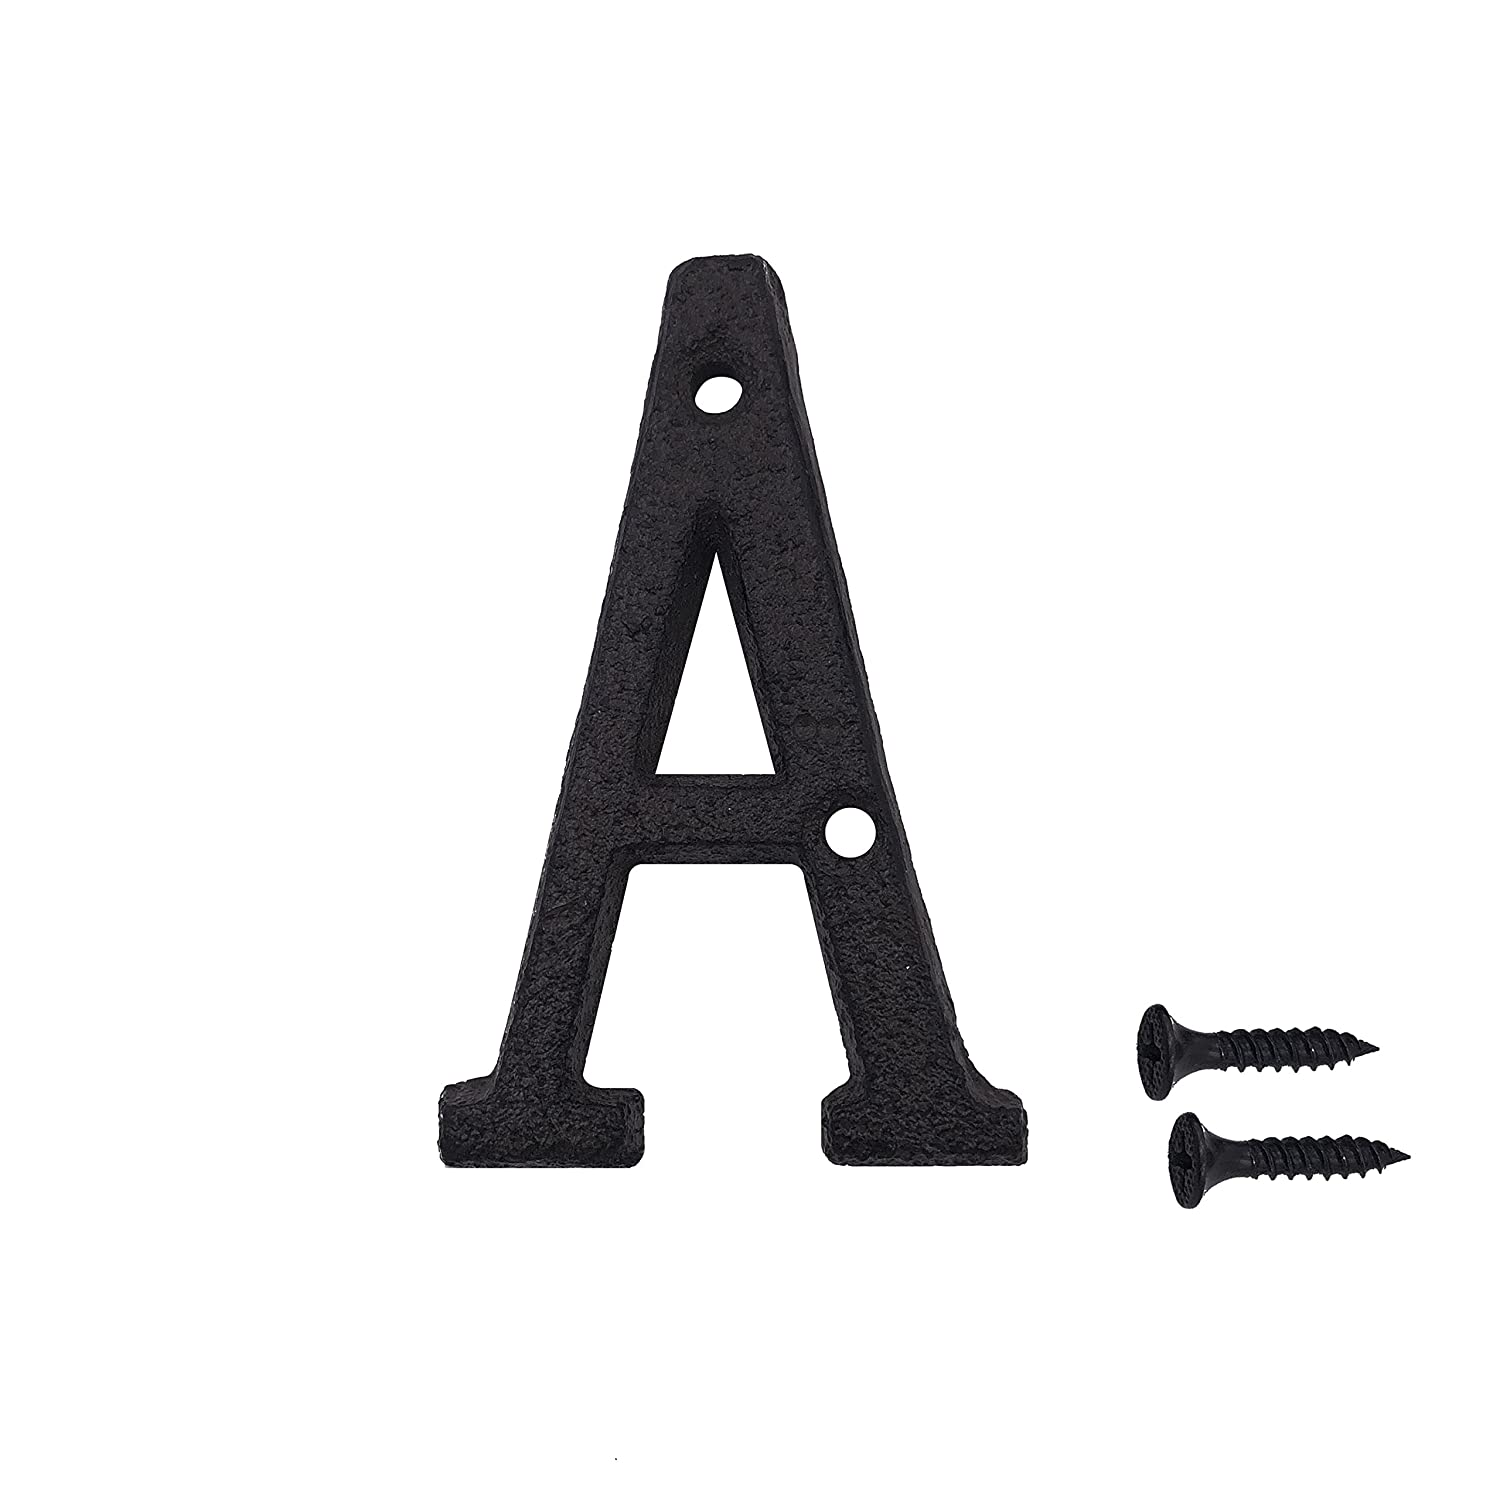 3 Inch Wrought Iron House Number, Matching Screws Included Black Number 6 TripDock TD-HOUSE070607